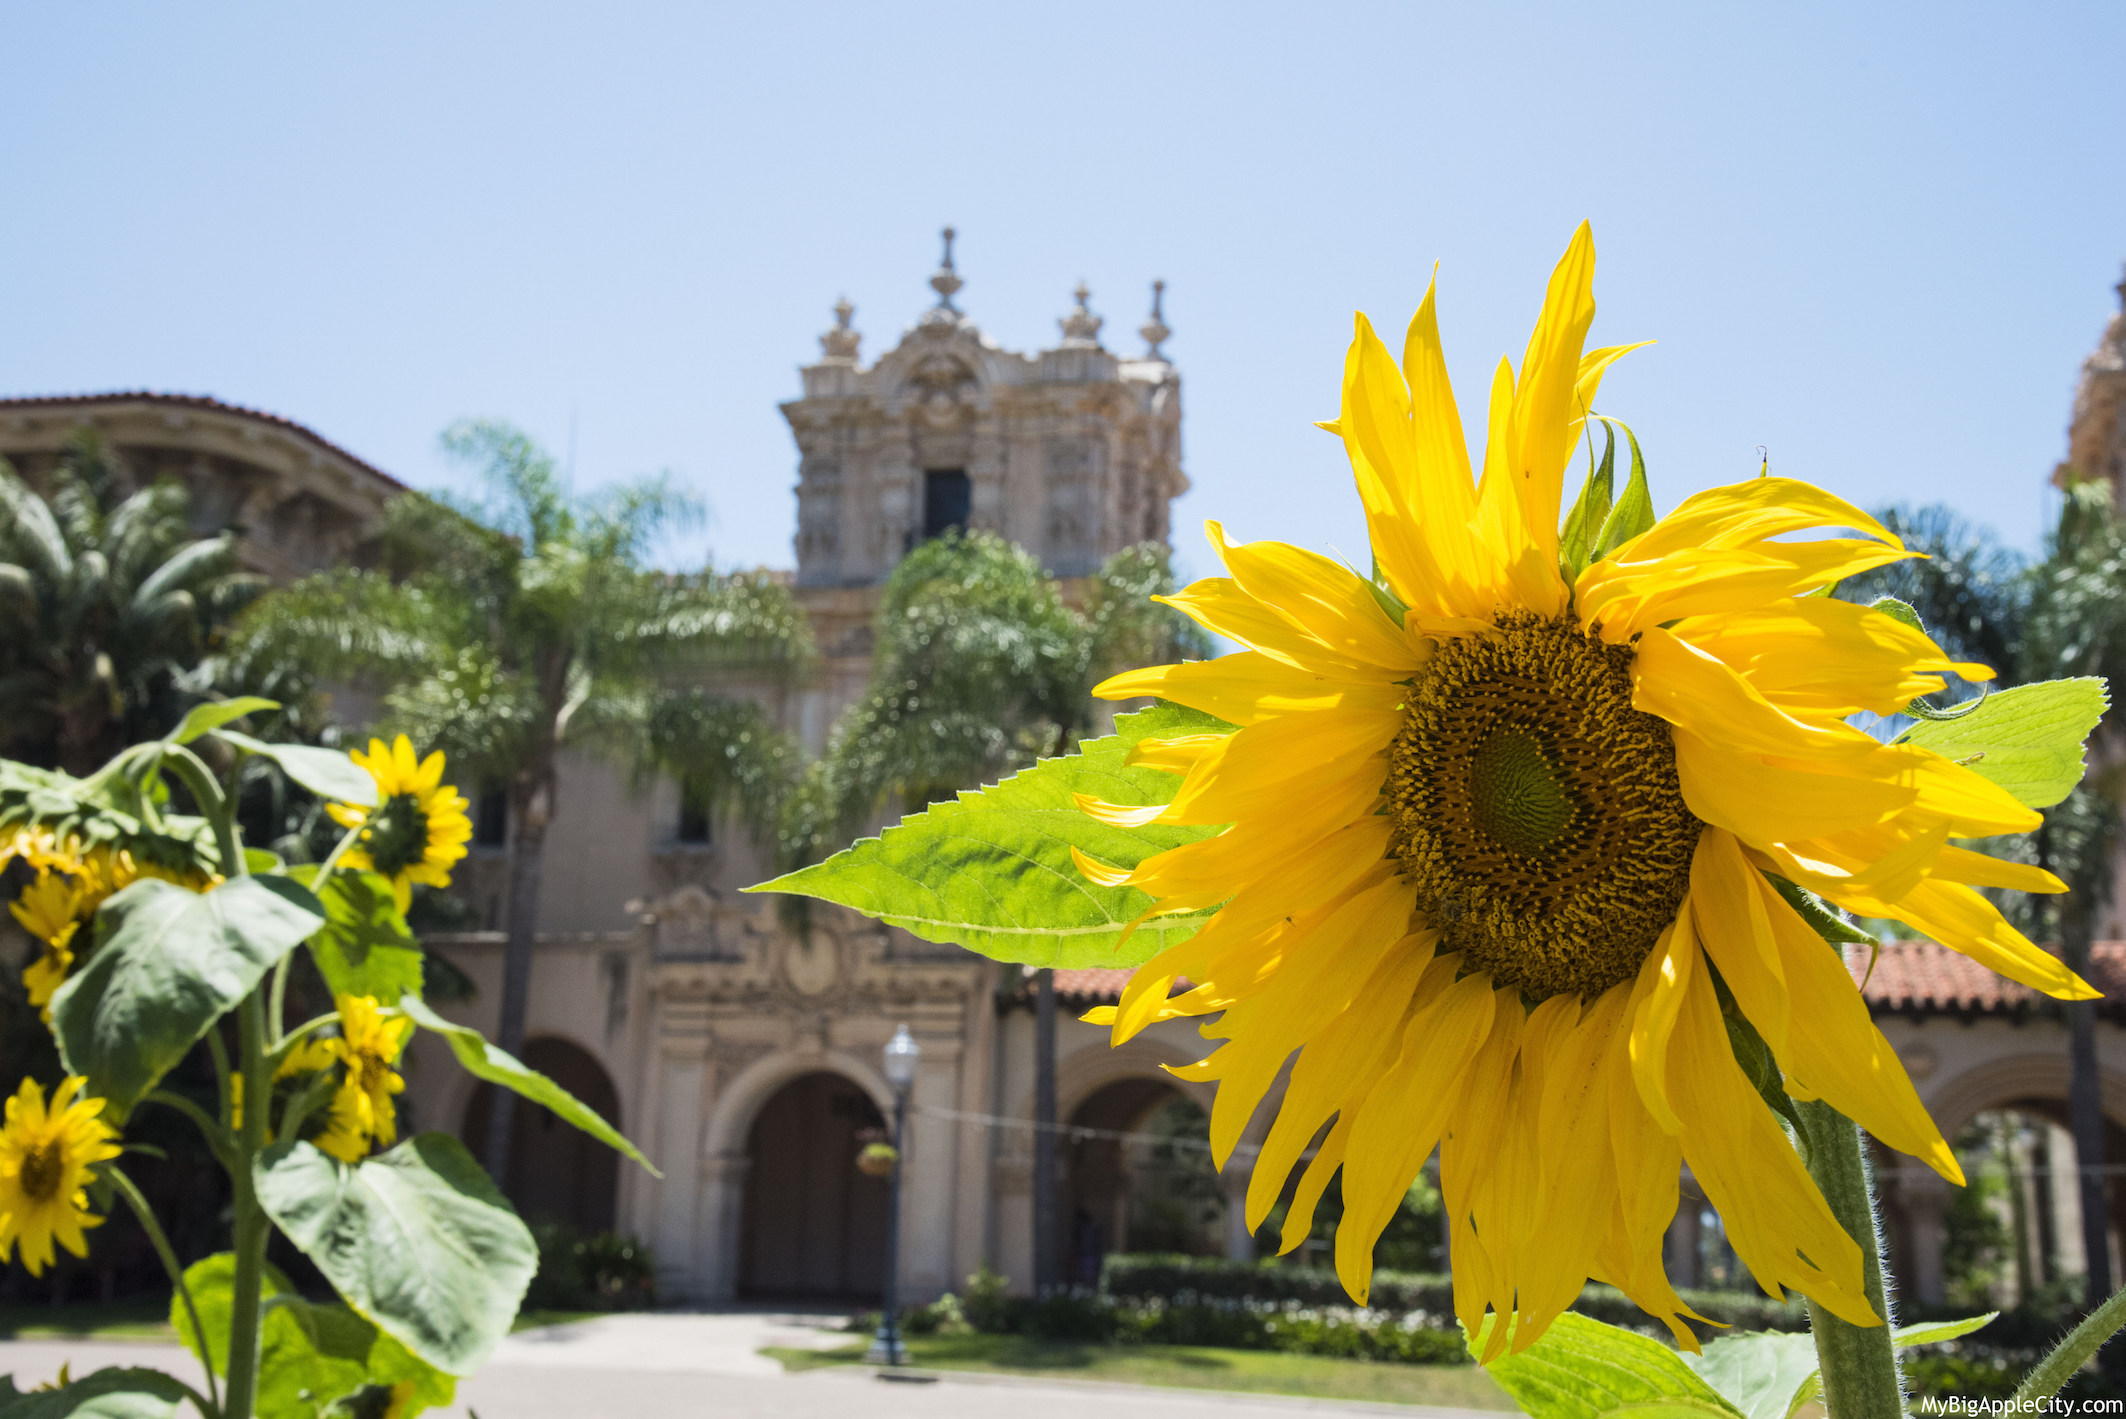 San-Diego-Sunflower-Balboa-park-photography-mybigapplecity